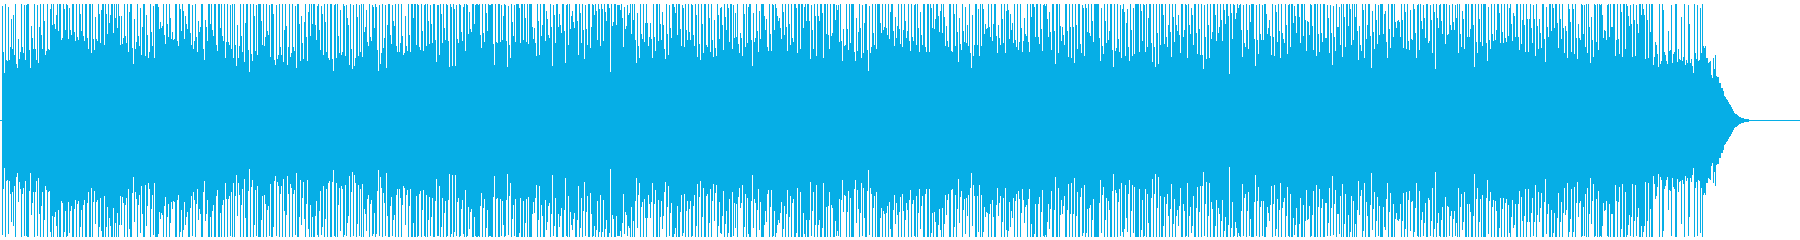 Refreshing piano resonance for corporate VPs and images's reproduced waveform